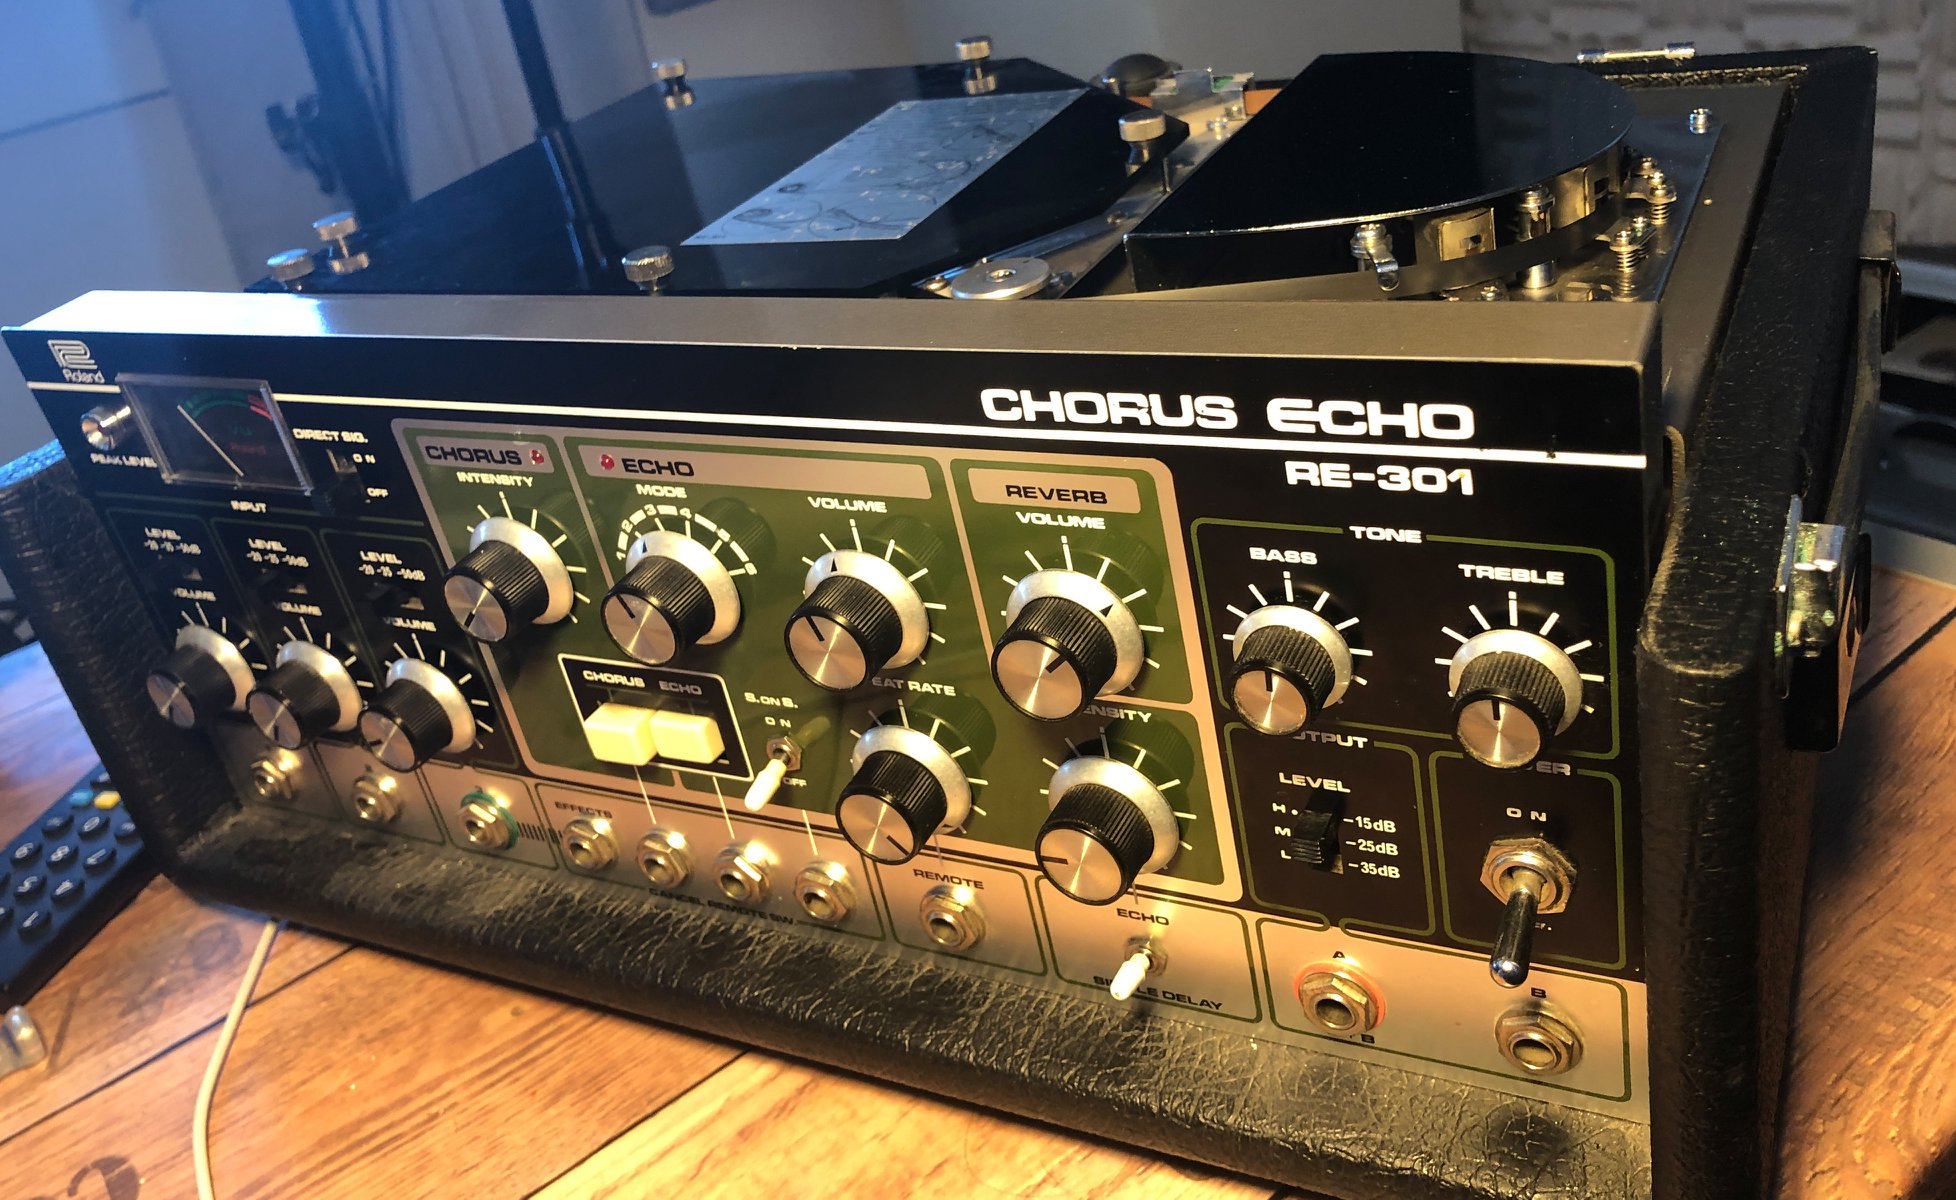 Roland RE-301 Space-Echo: A legend in creating tape delay and spring reverb. The effects with the feedback are still heard in modern productions... great one! Foto: privat